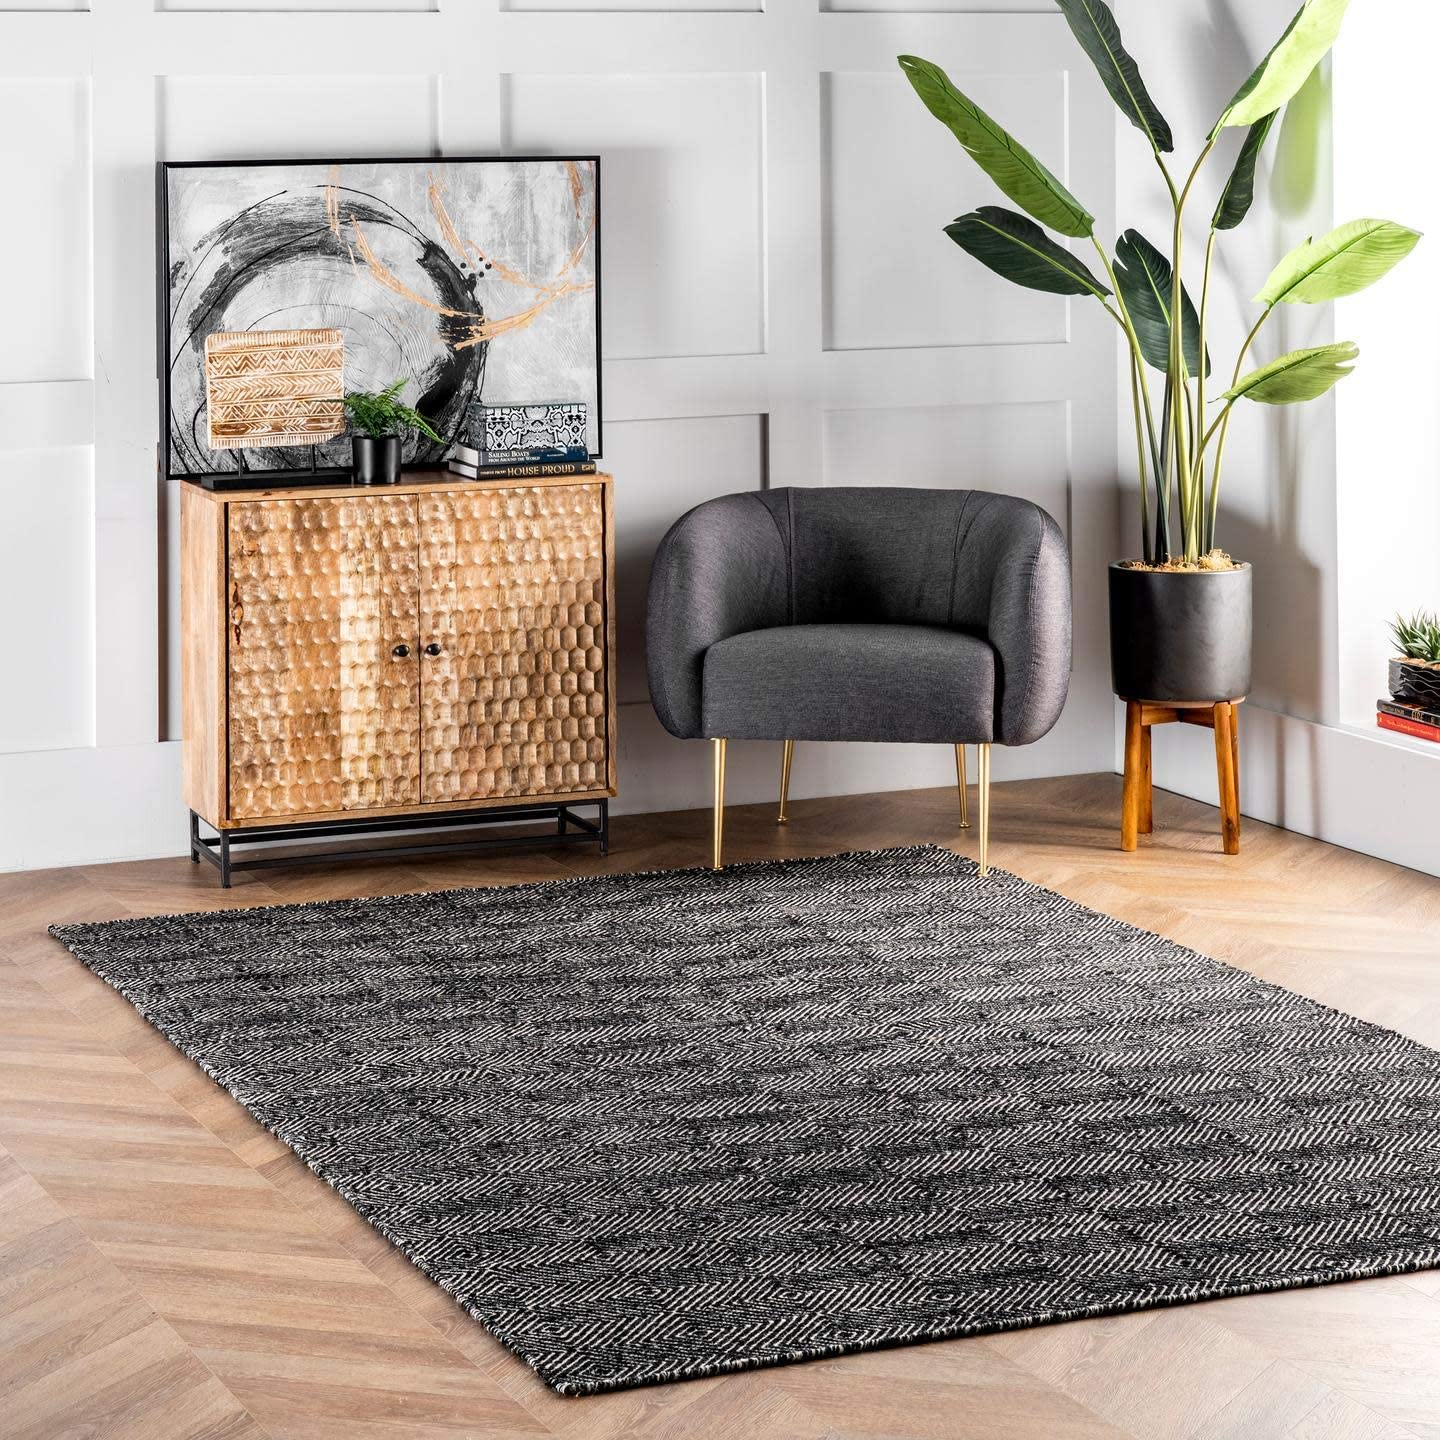 nuLOOM Agoja Hand Tufted Wool Rug, 4' x 6', Black